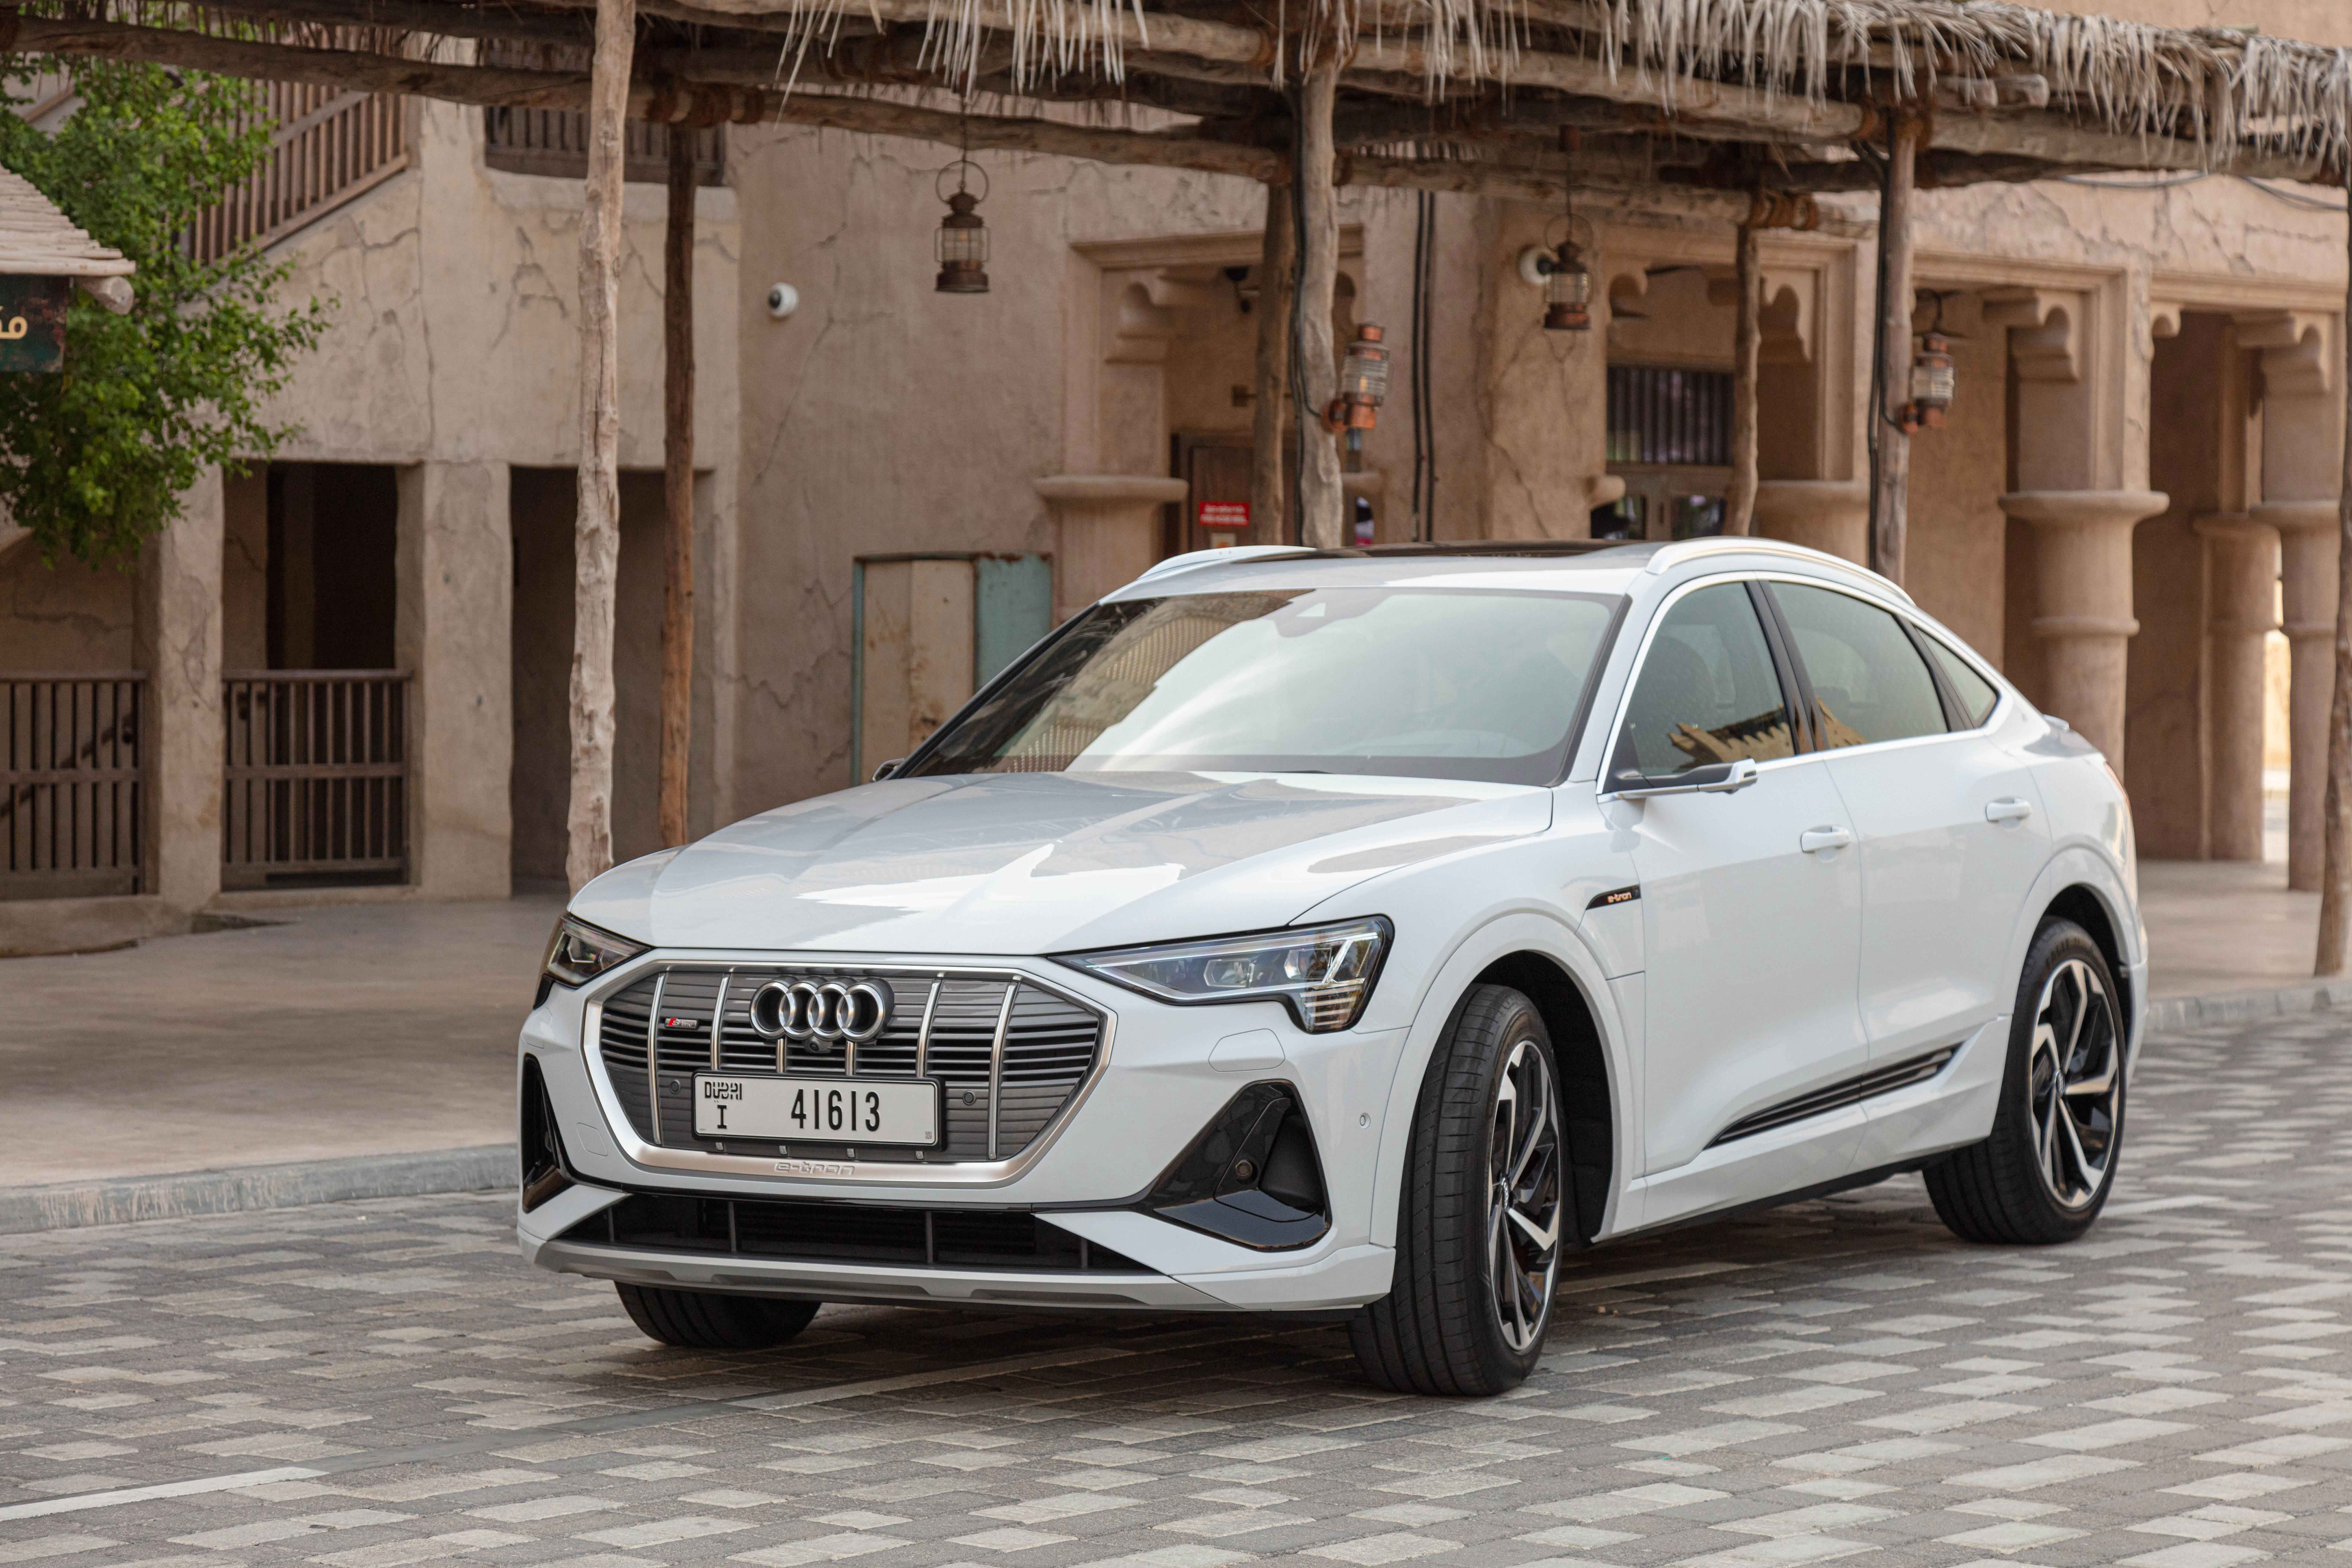 The e-tron Sportback hits the showroom floor in Dubai and Northern Emirates